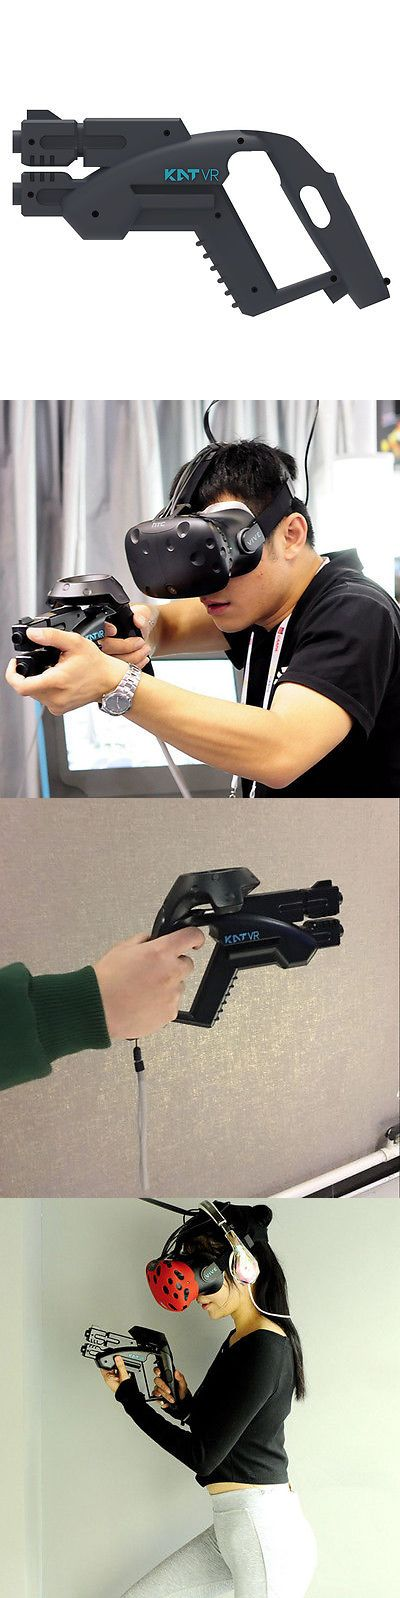 Other Virtual Reality Accs: Kat Vr Handgun Shooting Game Small Pistol Gun Controller For Htc Vive Vr Shop -> BUY IT NOW ONLY: $55 on eBay!